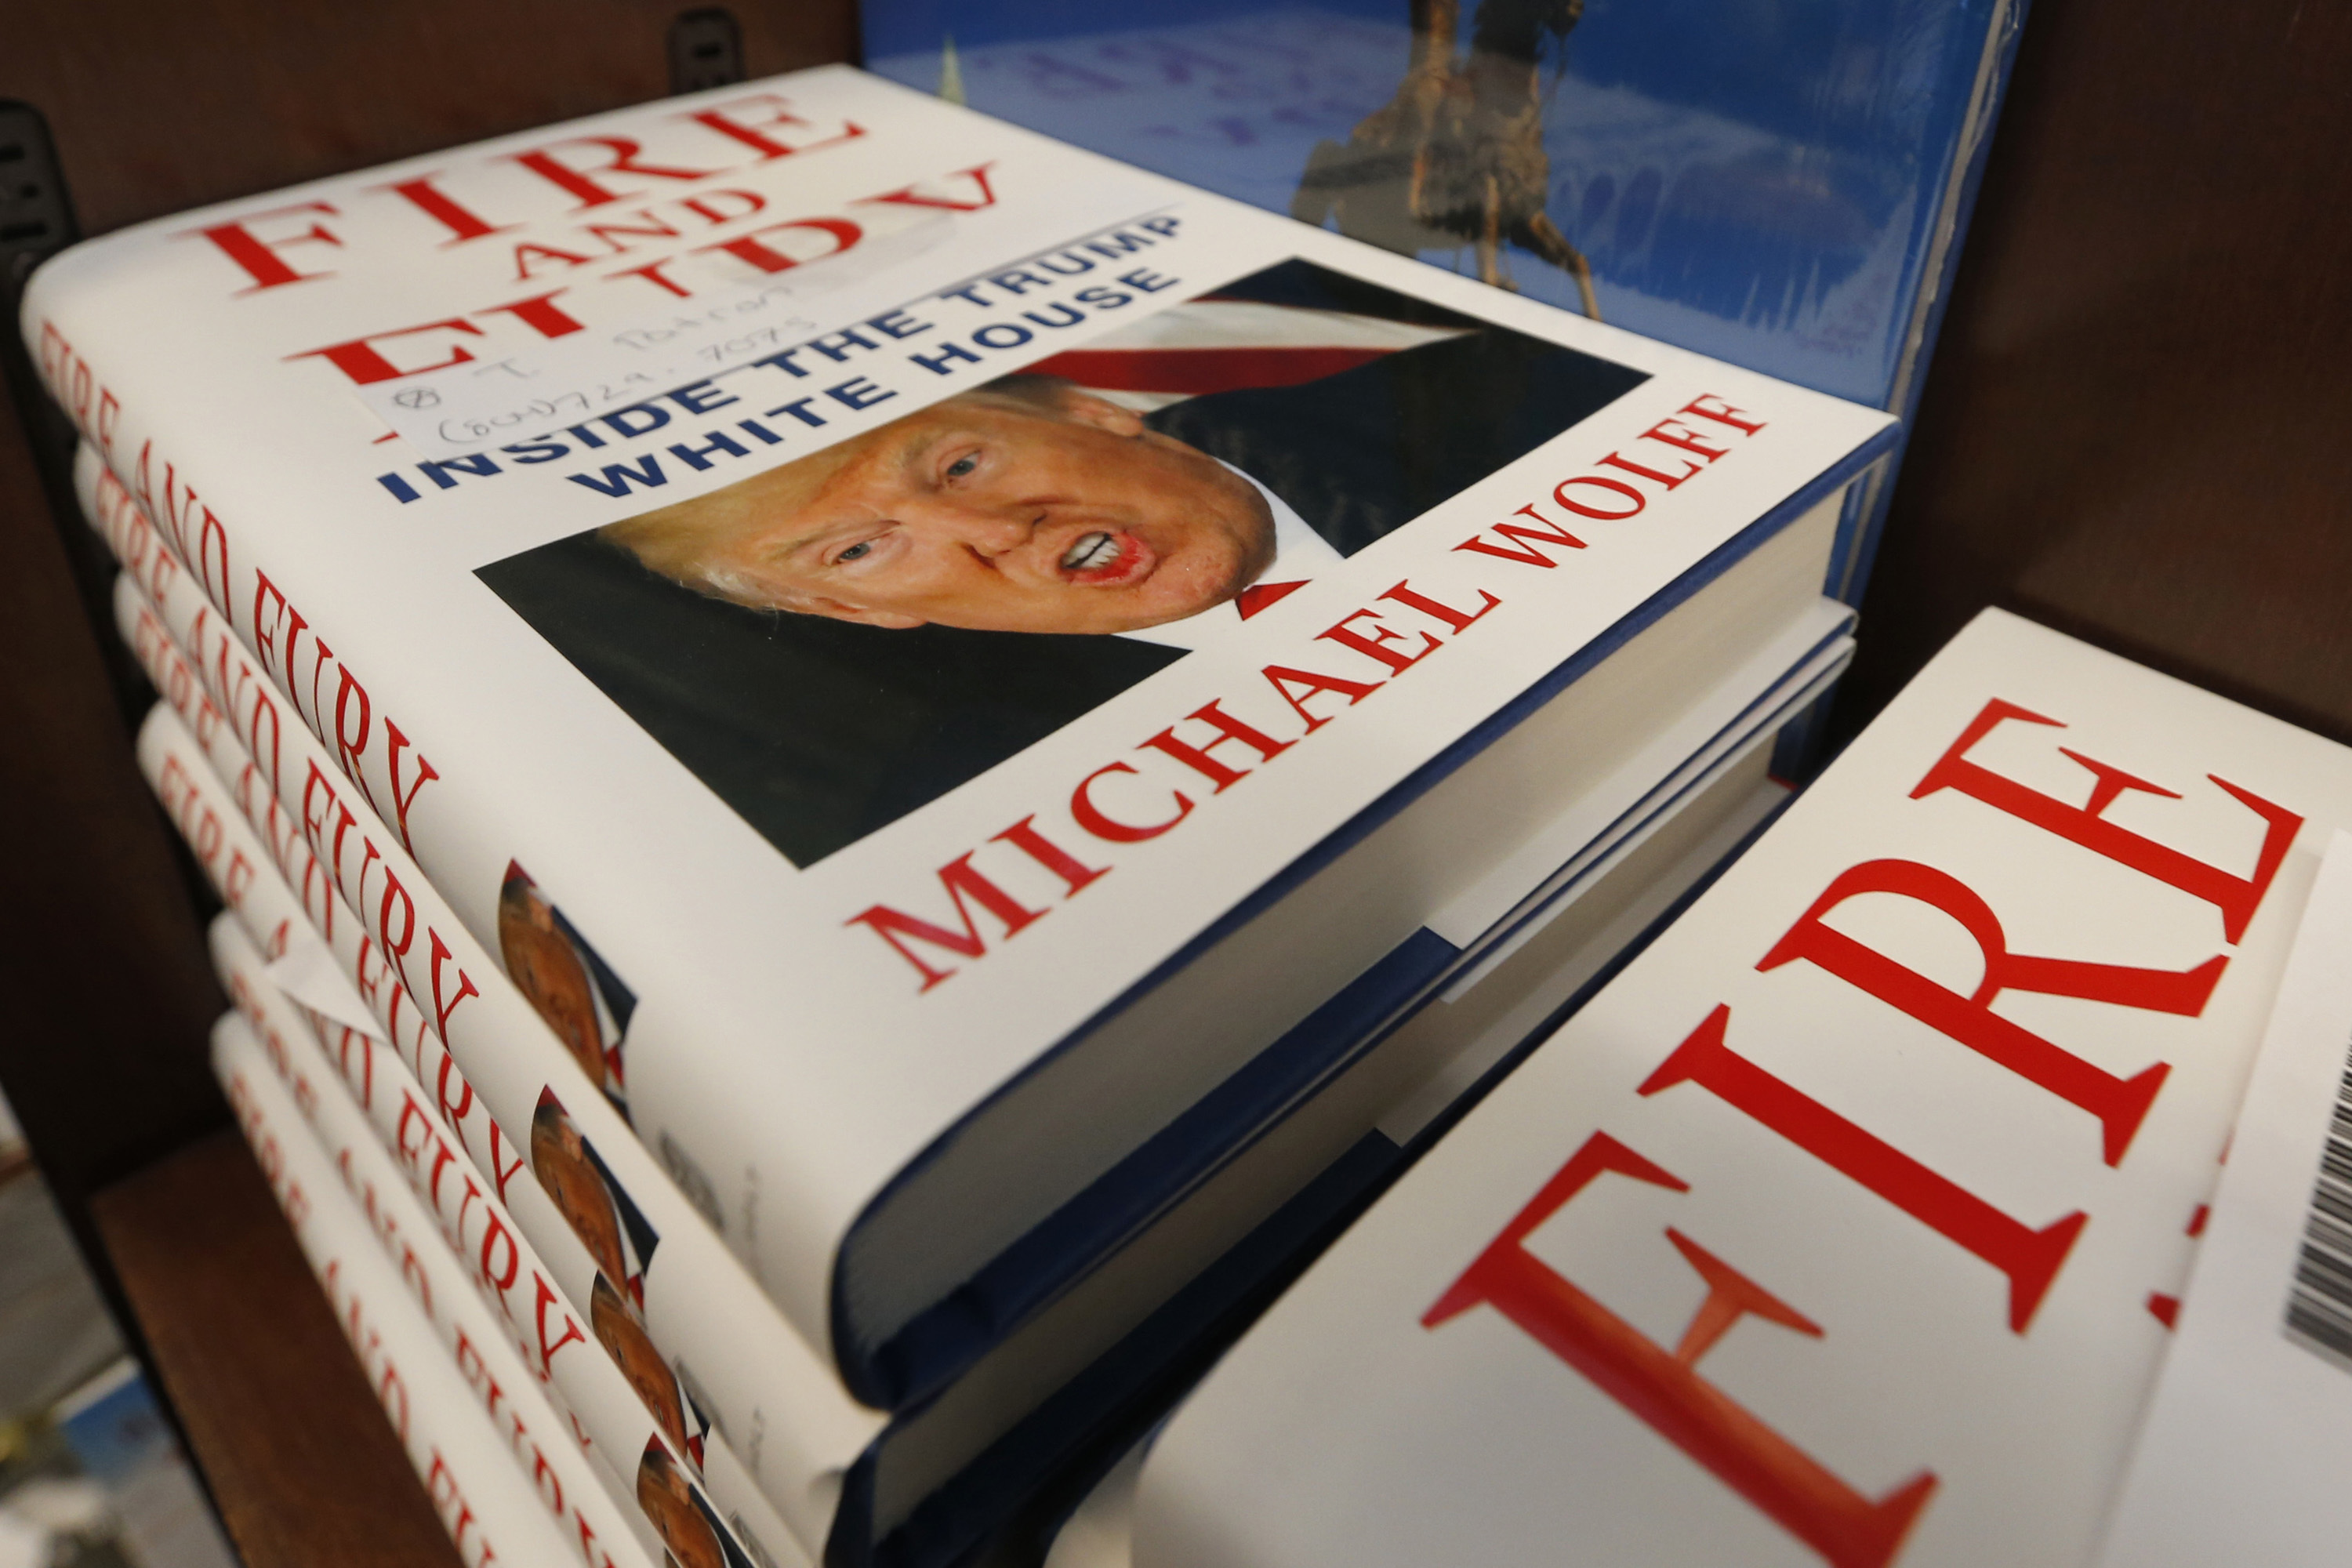 Michael Wolff's book